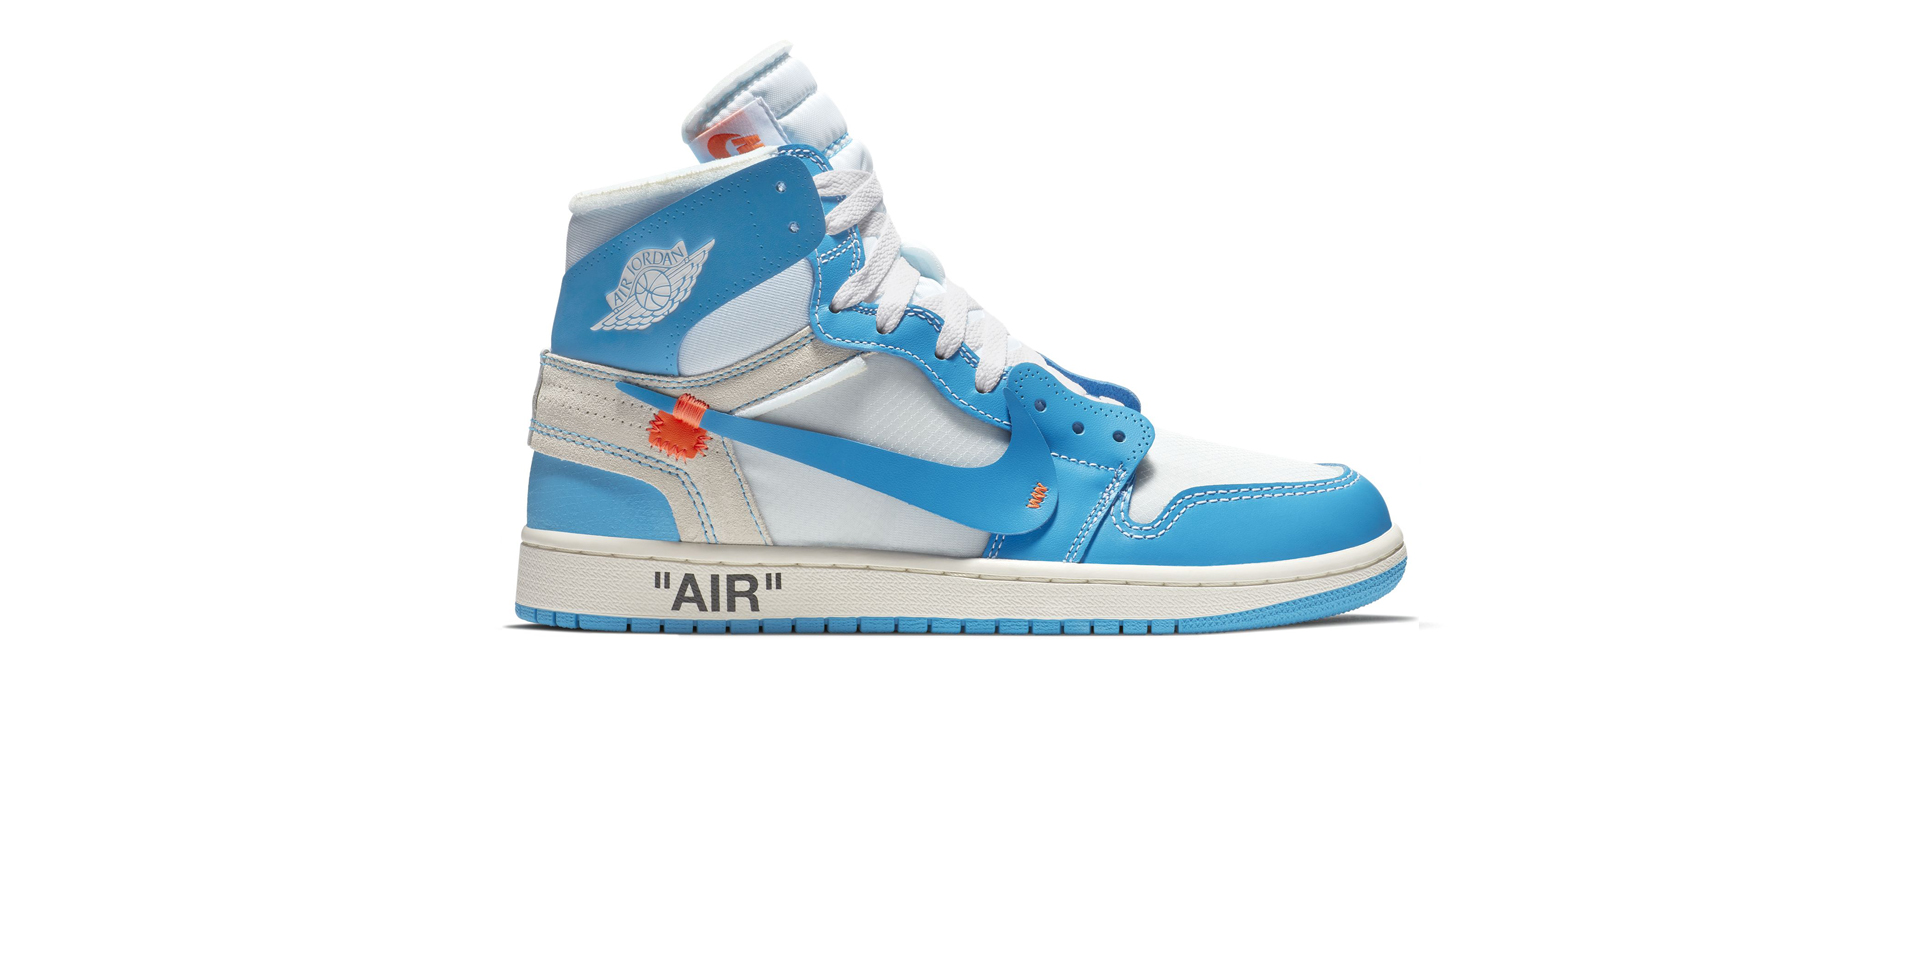 AIR JORDAN 1 X OFF-WHITE – WHITE/DK POWDER BLUE-CONE